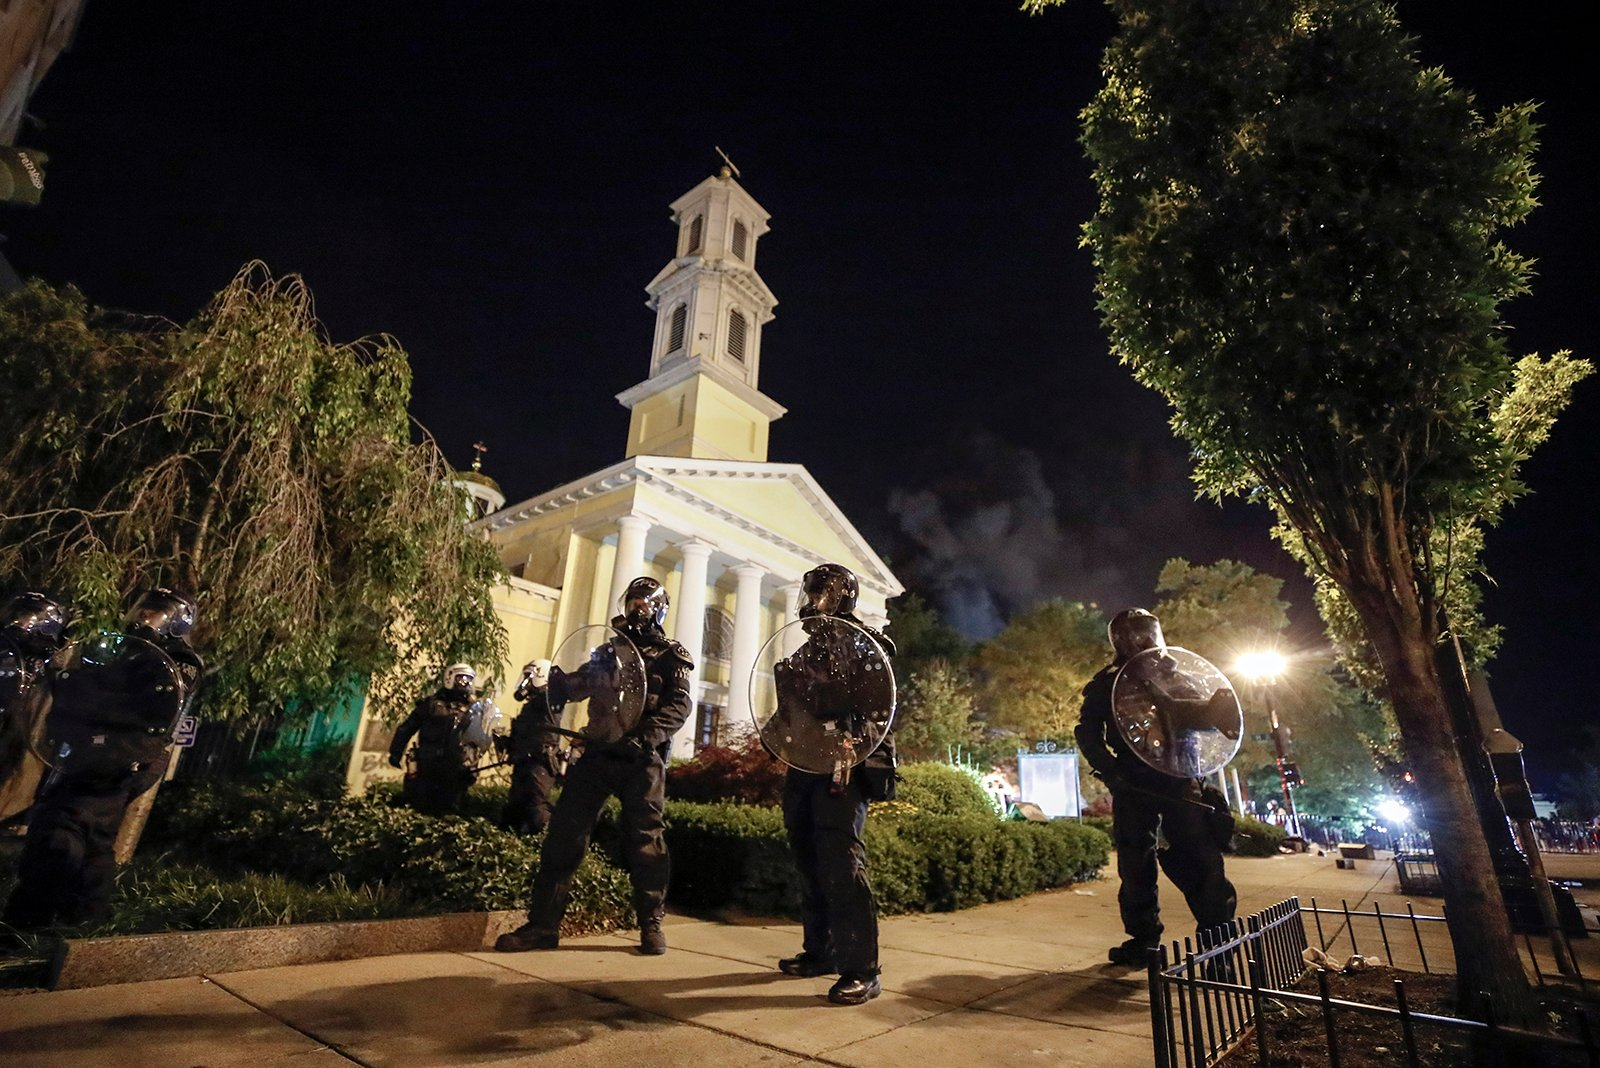 Police form a line in front of St. John's Episcopal Church as demonstrators protest the death of George Floyd, Sunday, May 31, 2020, near the White House in Washington. Floyd died after being restrained by Minneapolis police officers. (AP Photo/Alex Brandon)